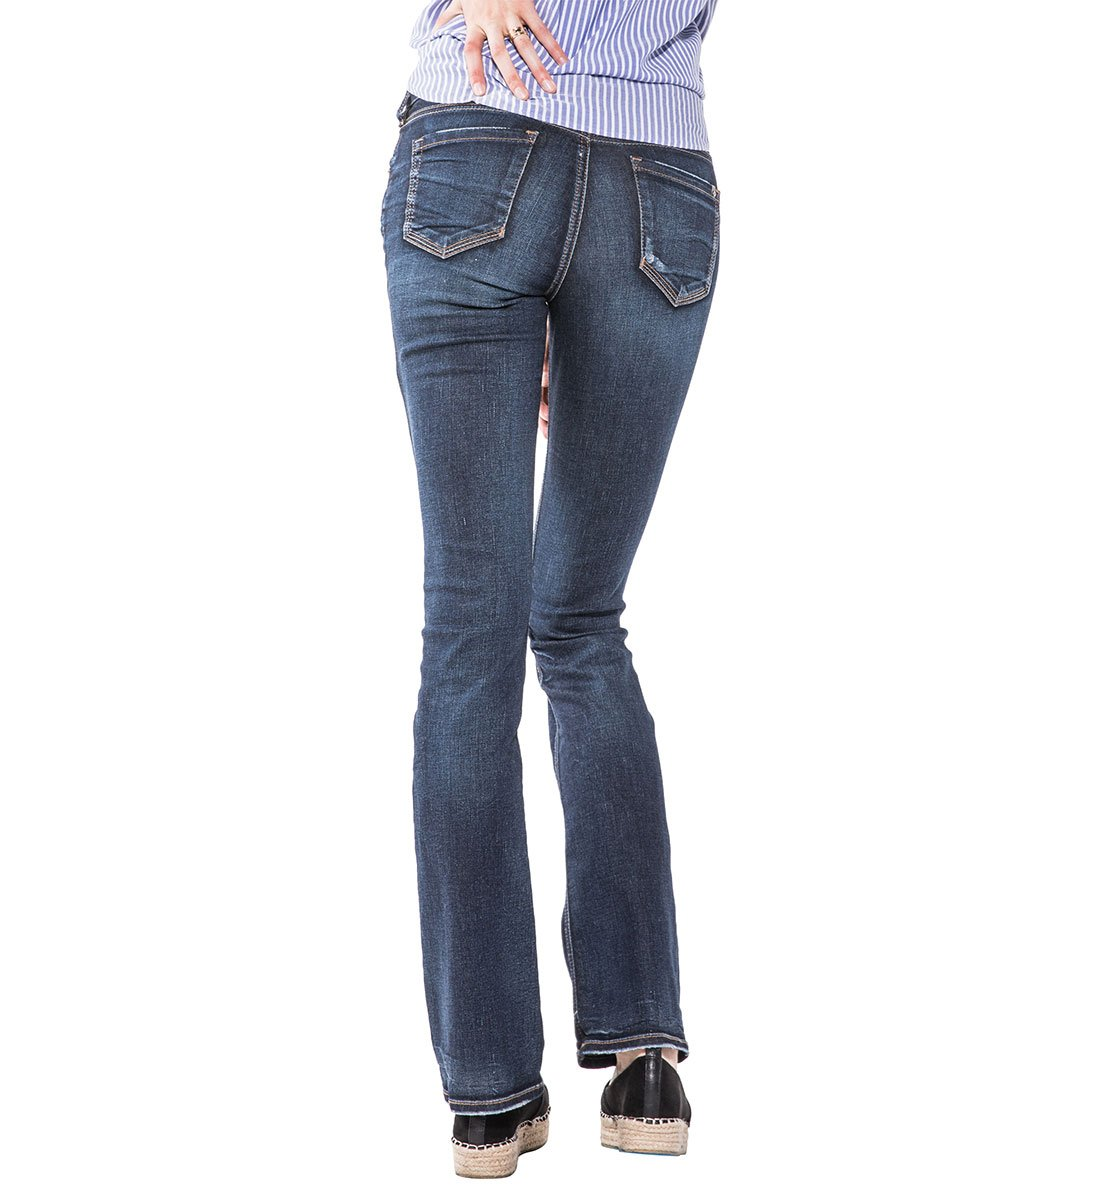 103bdd814d1 Silver Jeans Co. Women s Elyse Relaxed Fit Mid Rise Slim Bootcut Jeans